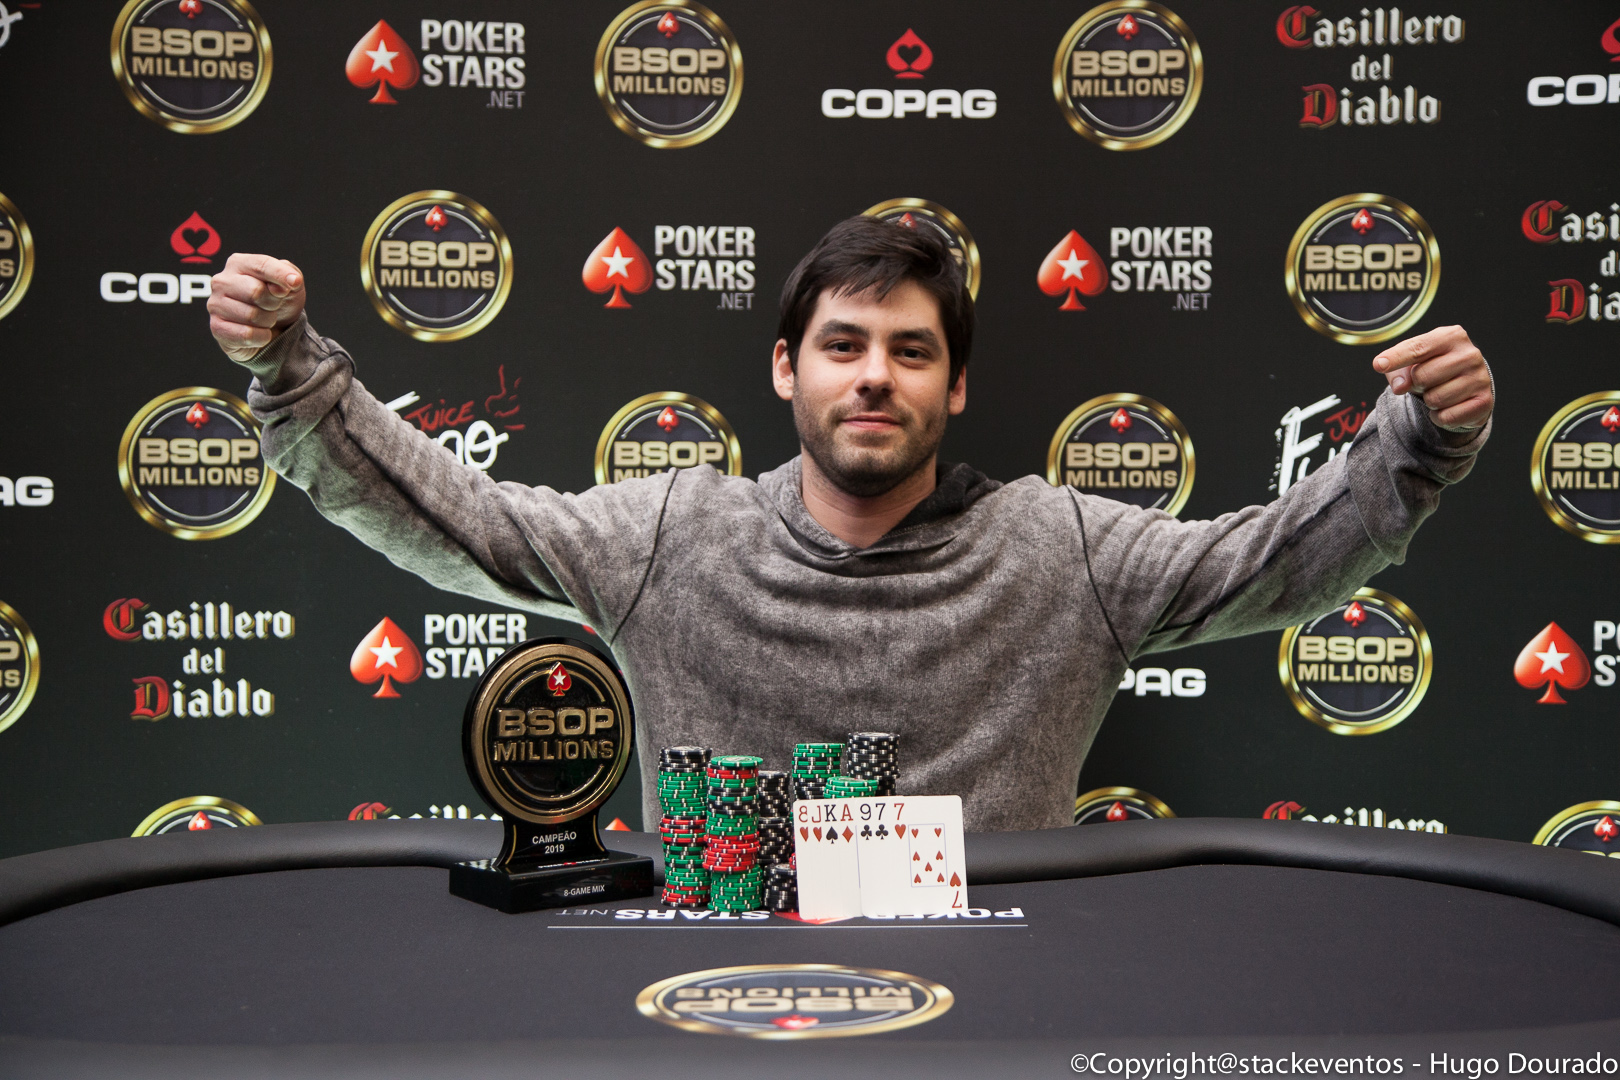 José da Costa Neto campeão do 8-Game do BSOP Millions